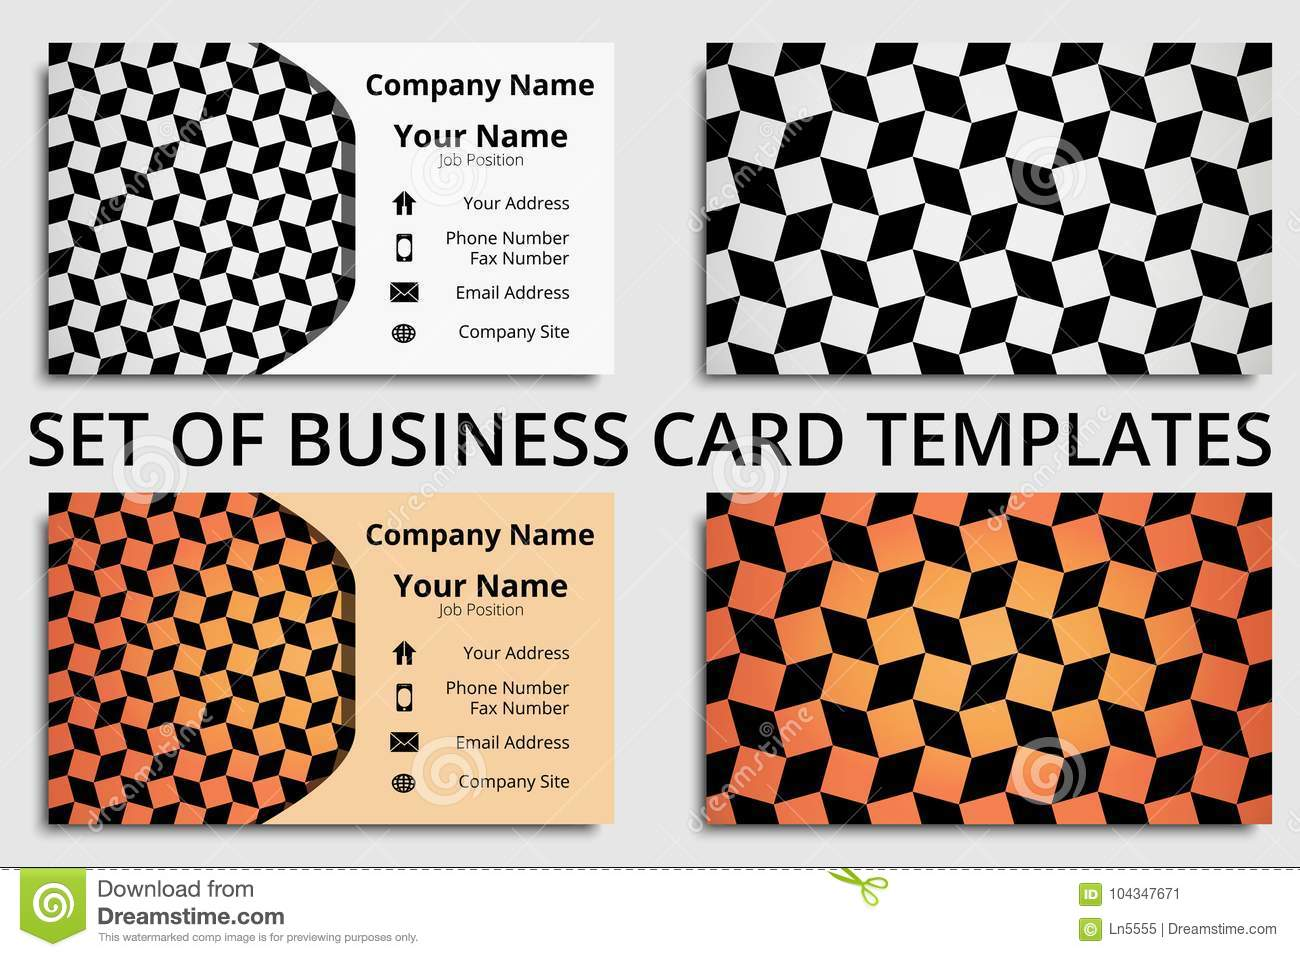 Set Of Business Cards With Modern Design In Black, White And